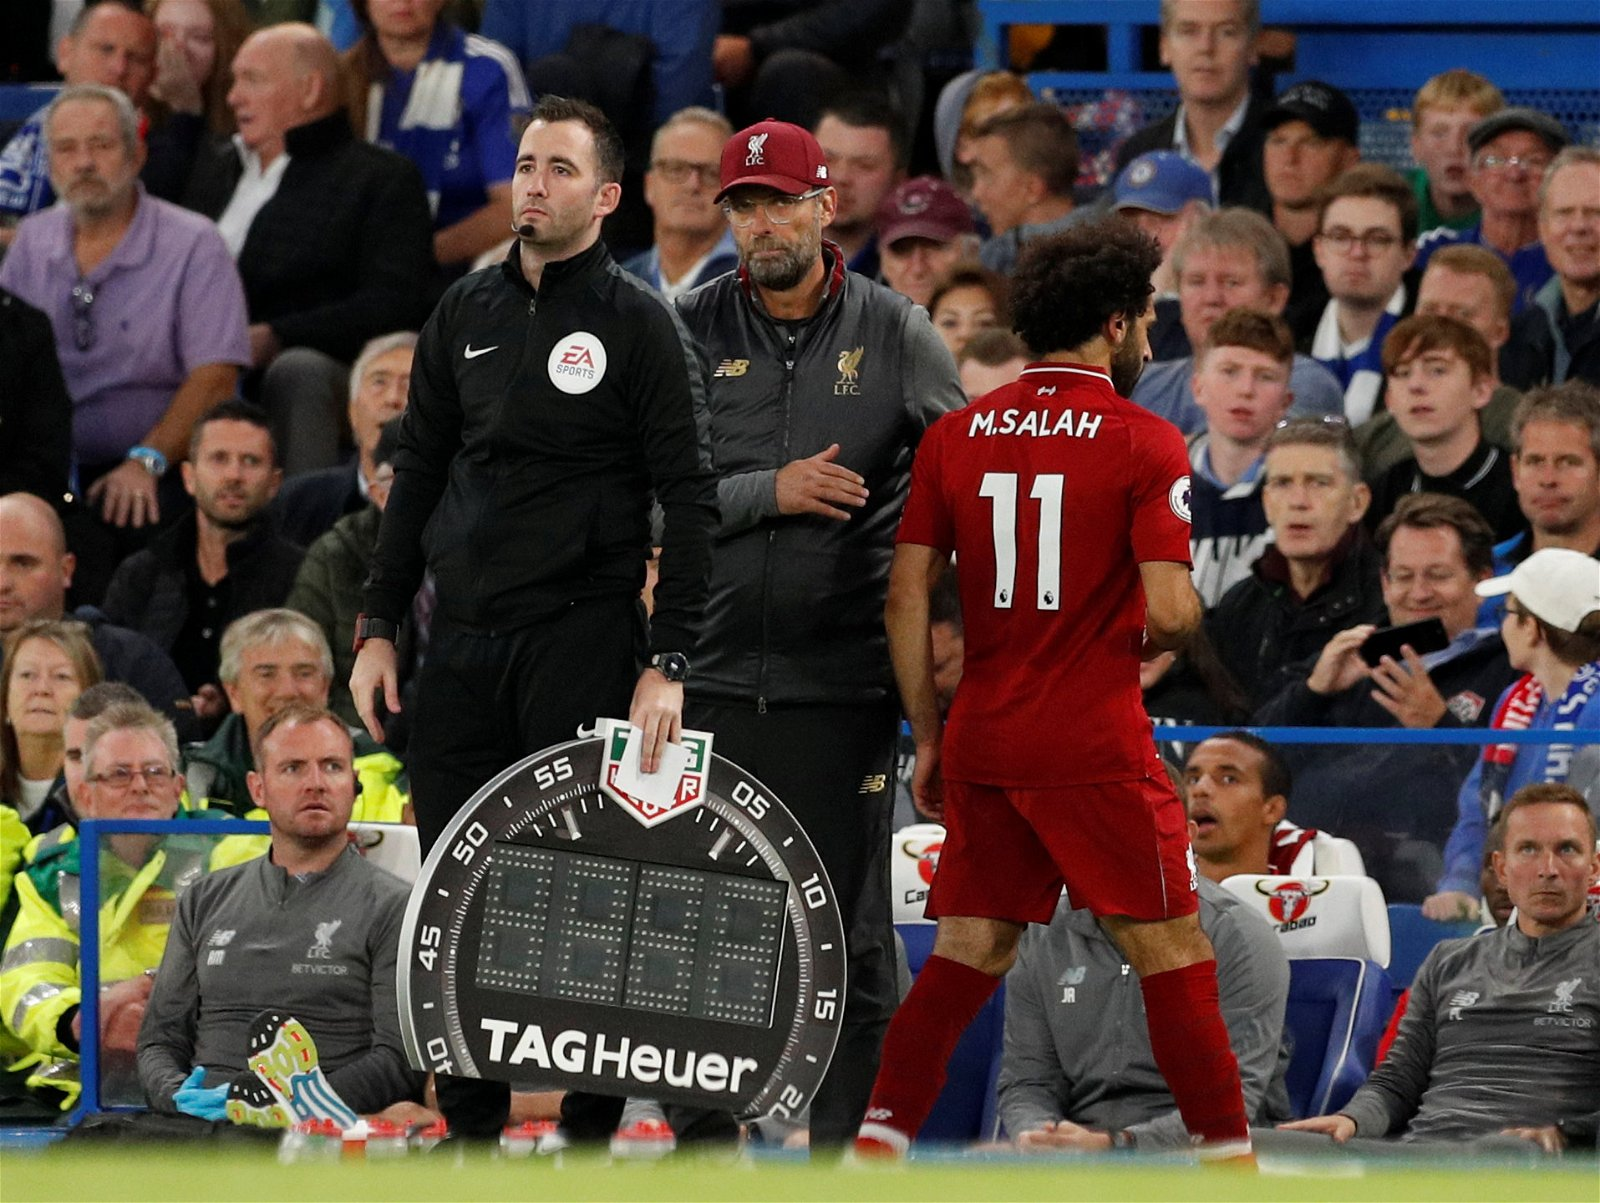 Mohamed Salah walks off the pitch after being substituted during Chelsea v Liverpool